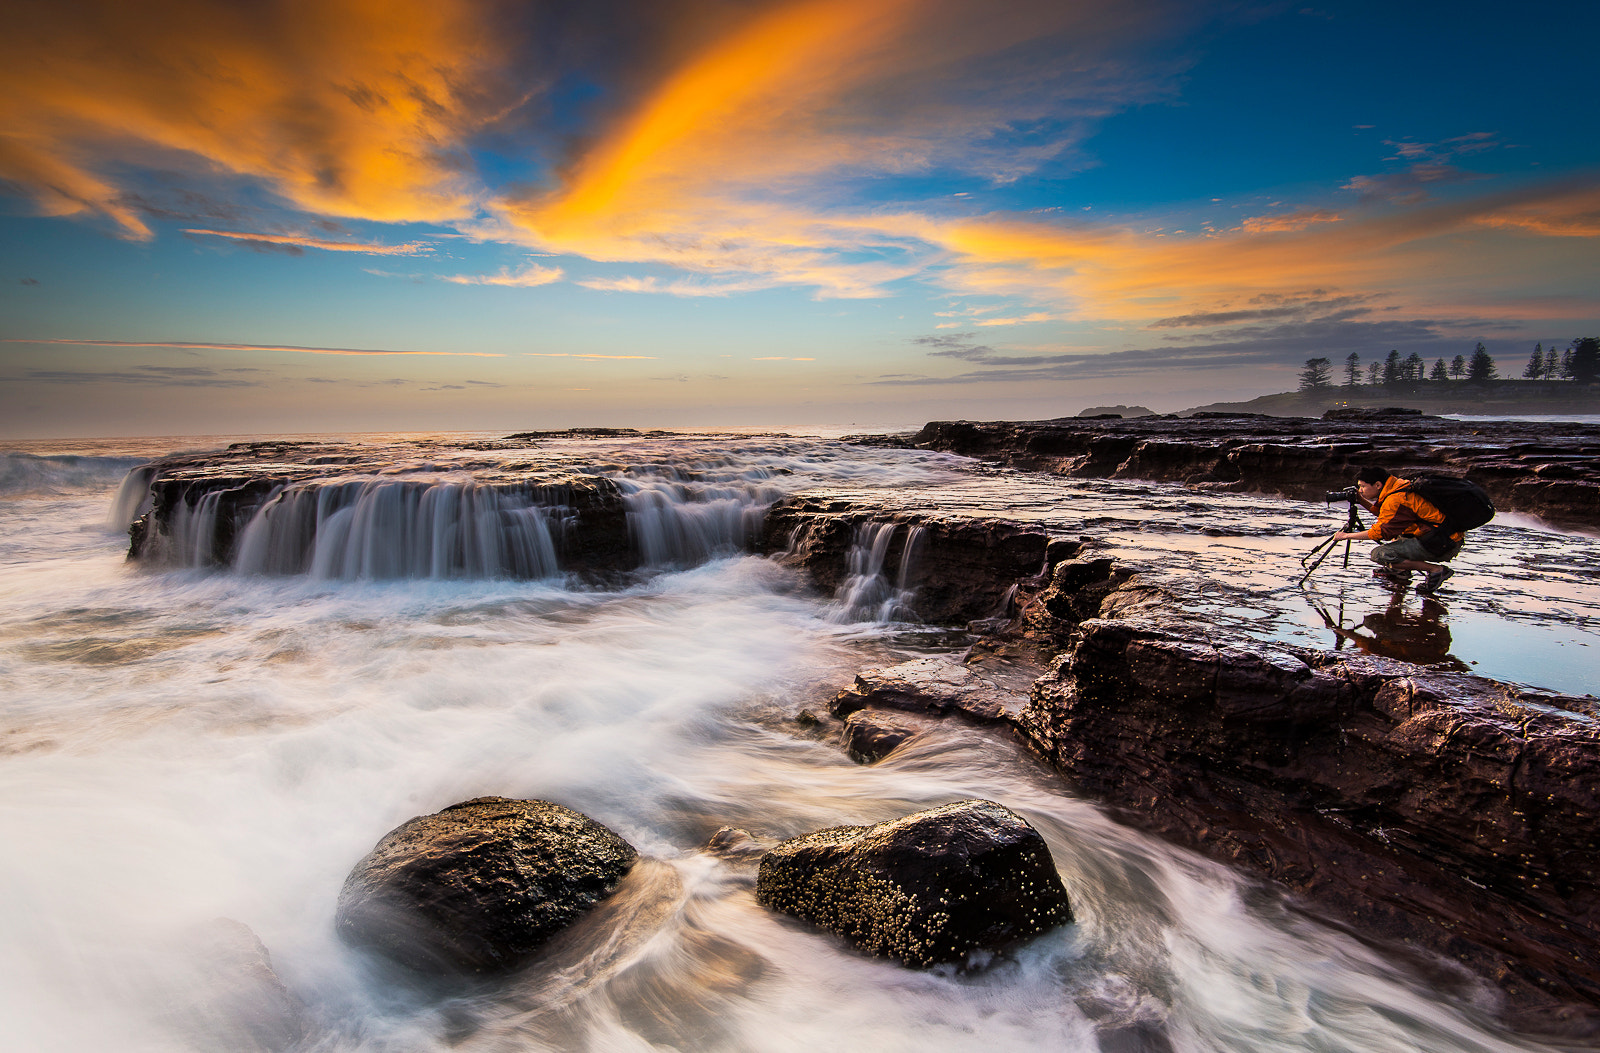 Photograph *** by Goff Kitsawad on 500px